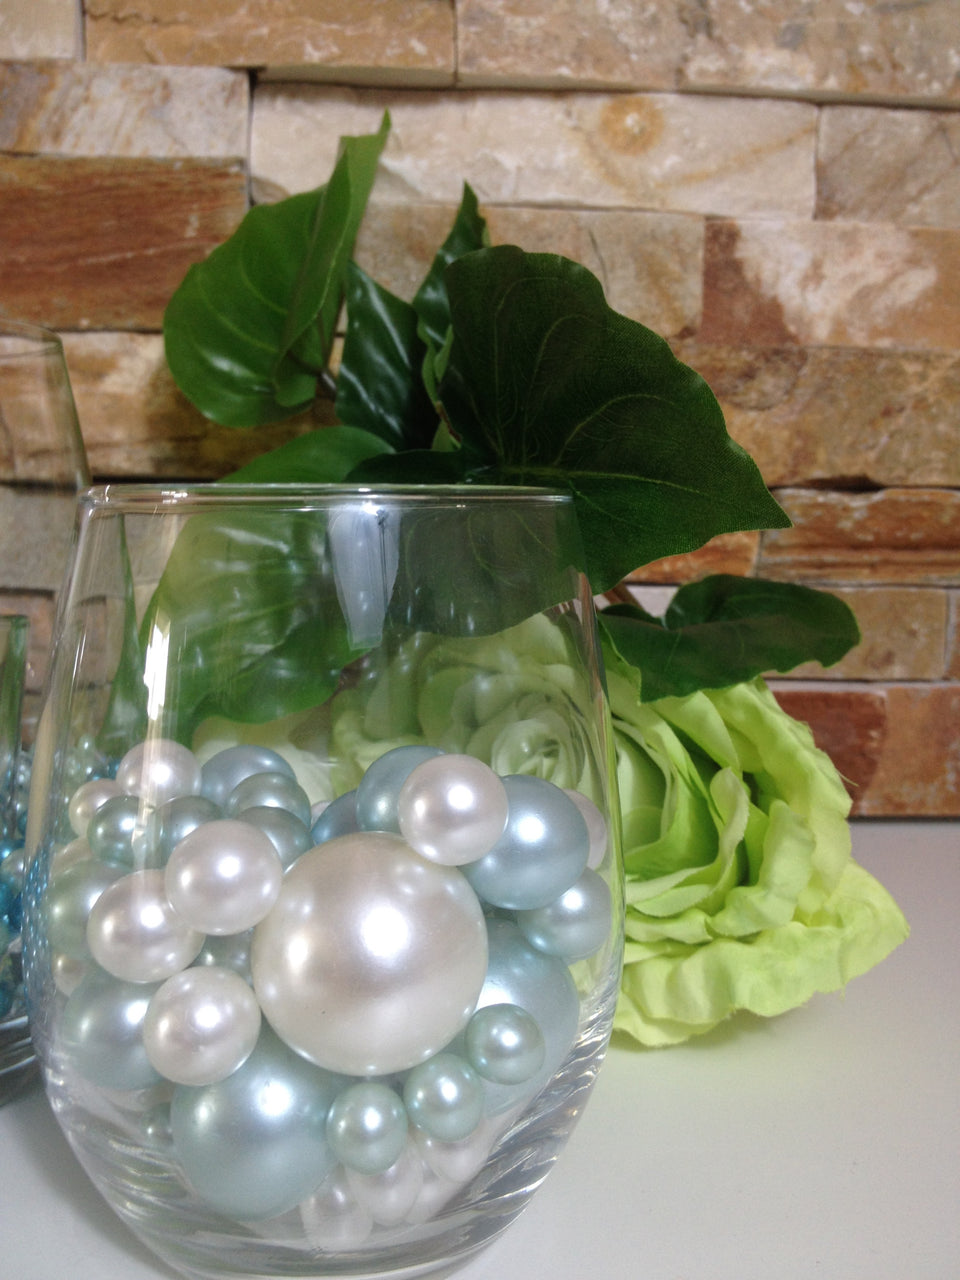 Baby Light Blue And White Pearls, Vase Filler Pearls, DIY Floating Pearl Centerpiece, Table Scatters And Confetti, Jumbo Mix Size Pearls